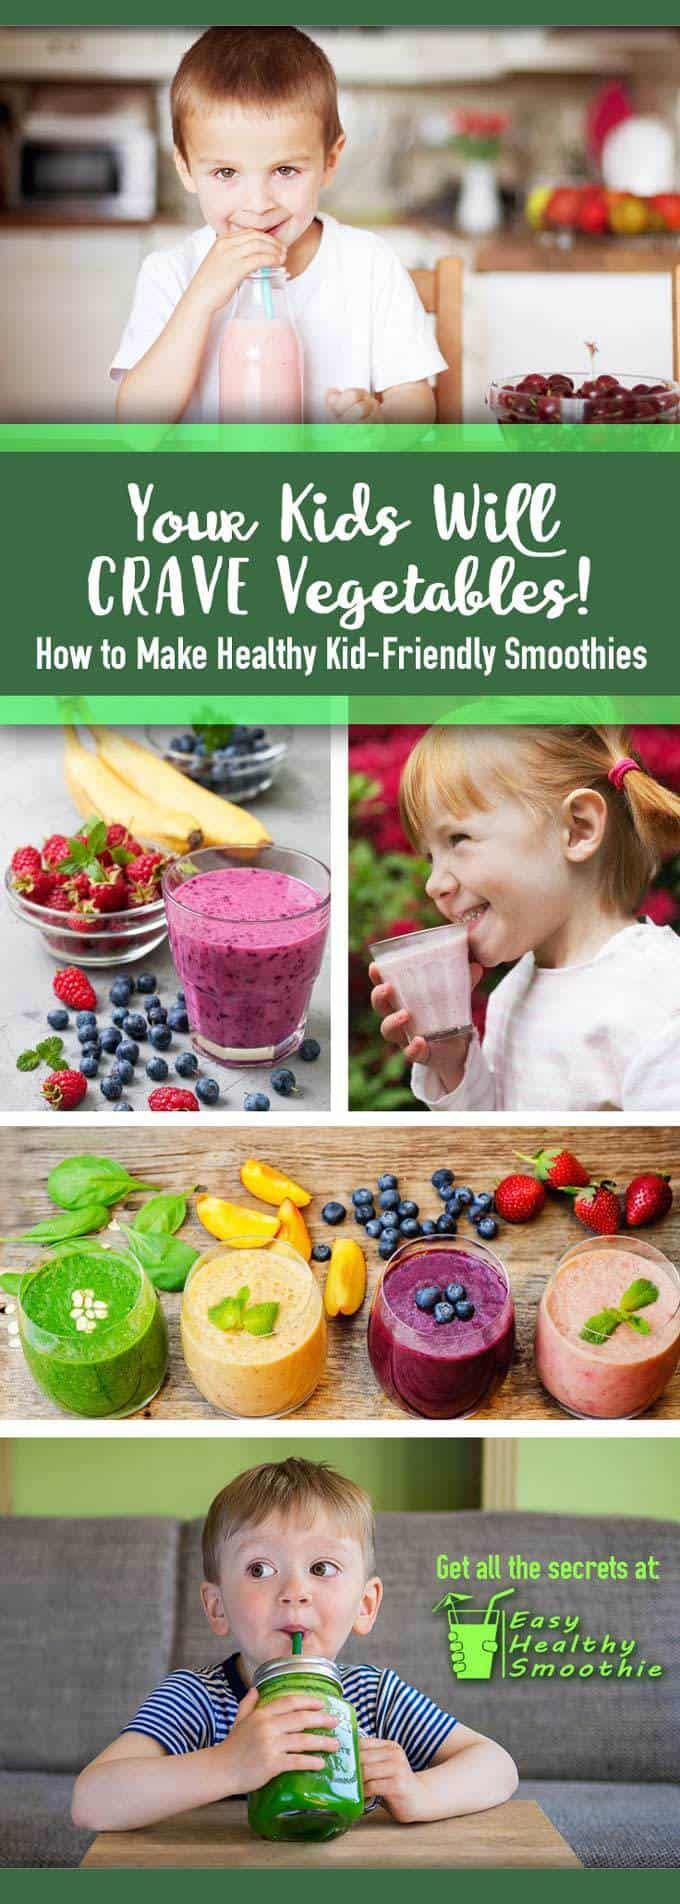 kid friendly smoothies pin